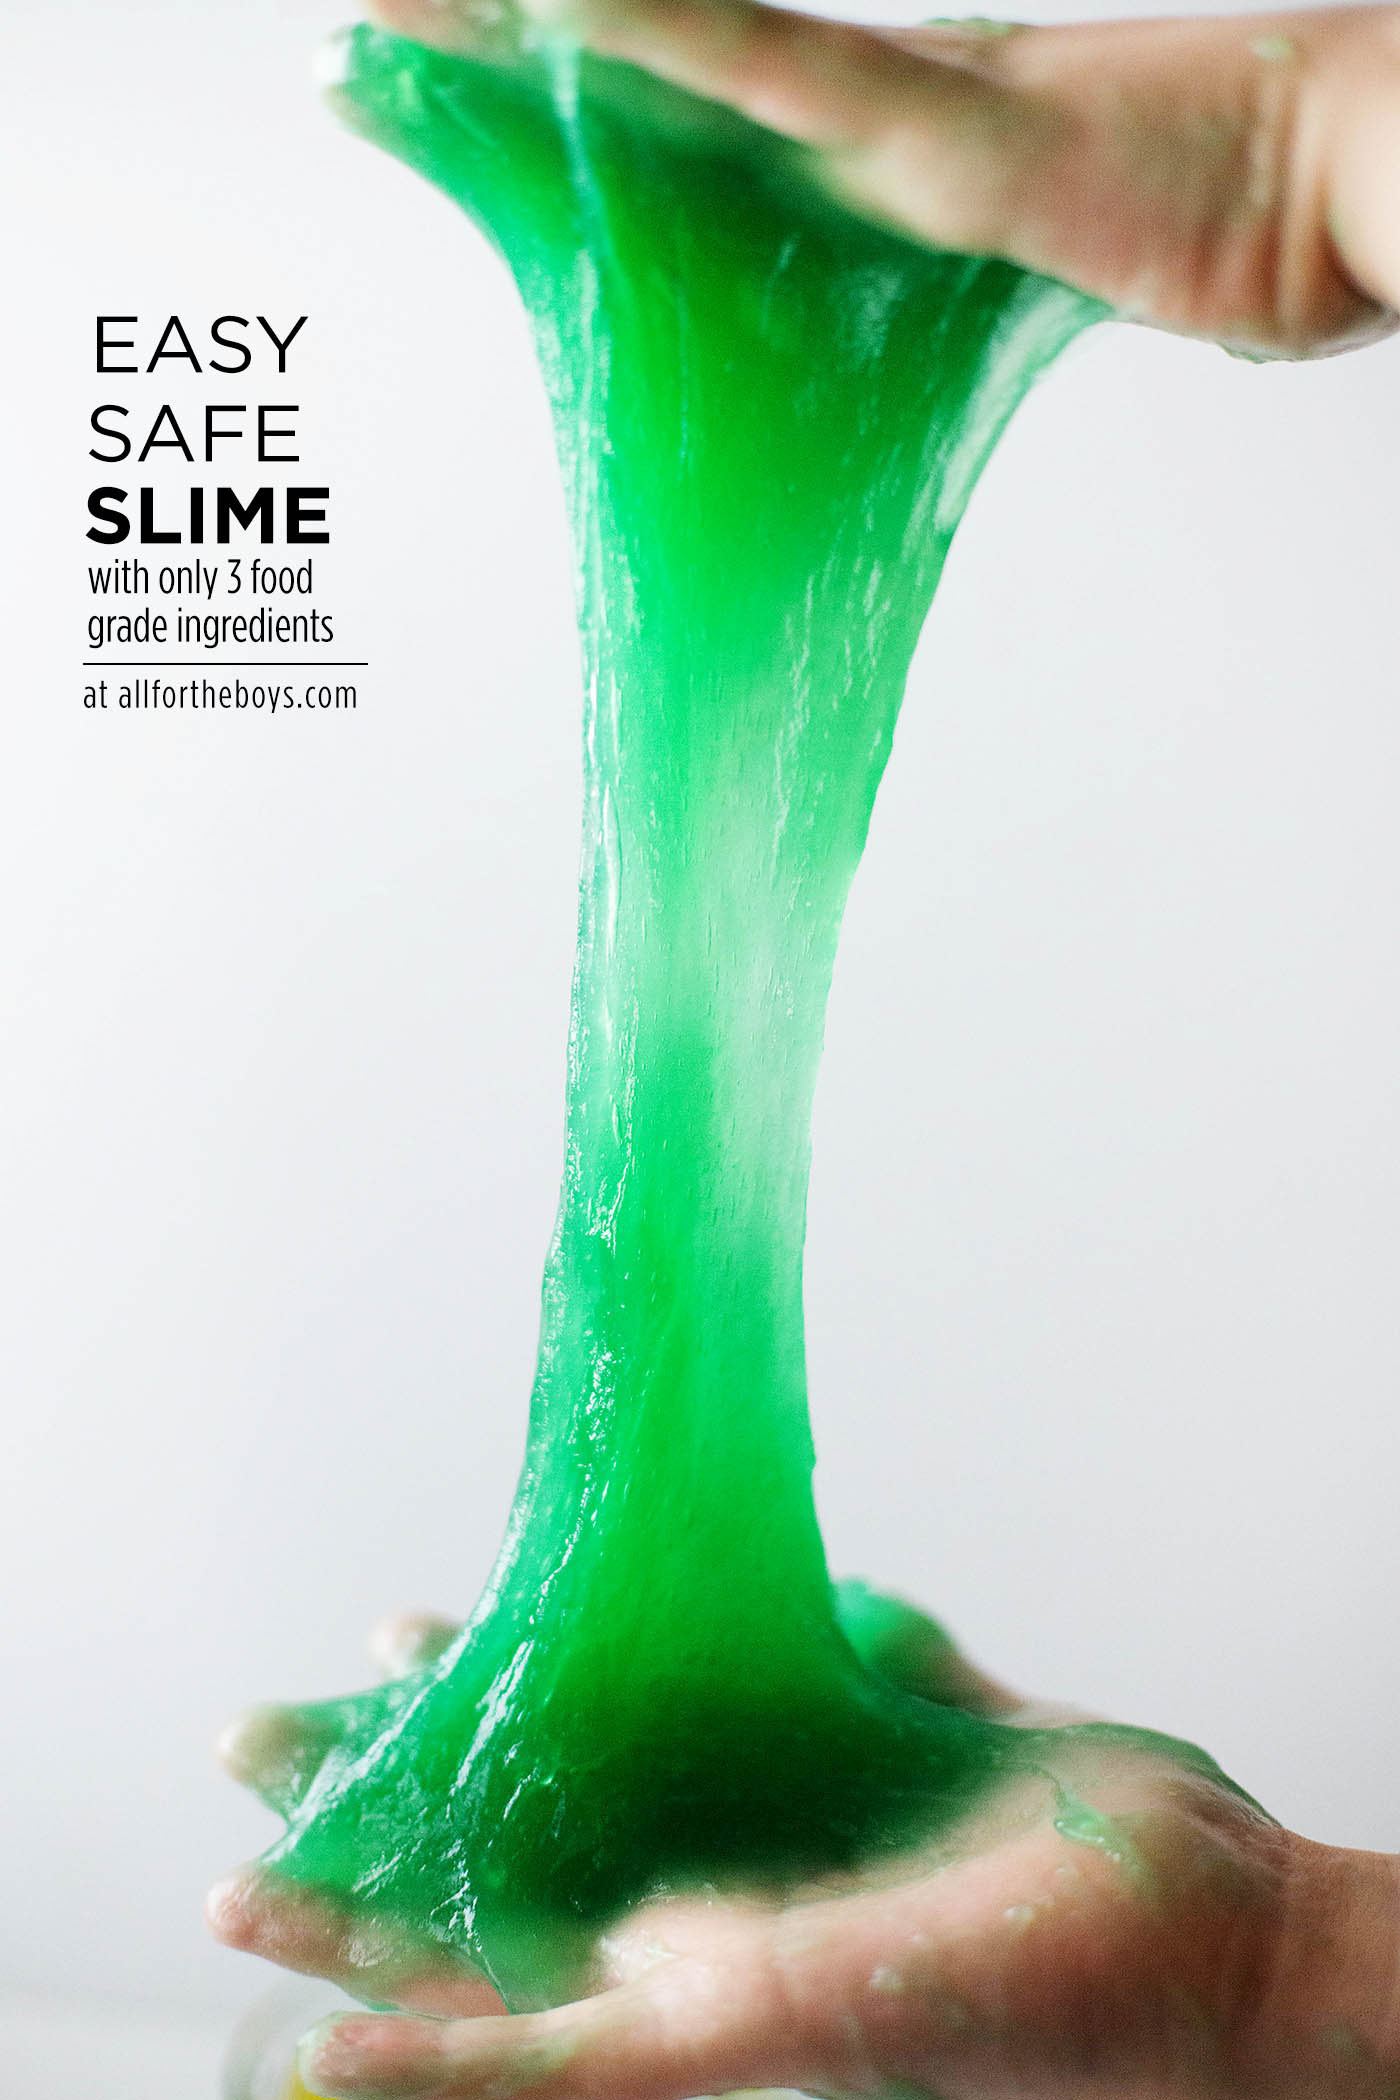 Easy safe slime made with food safe ingredients